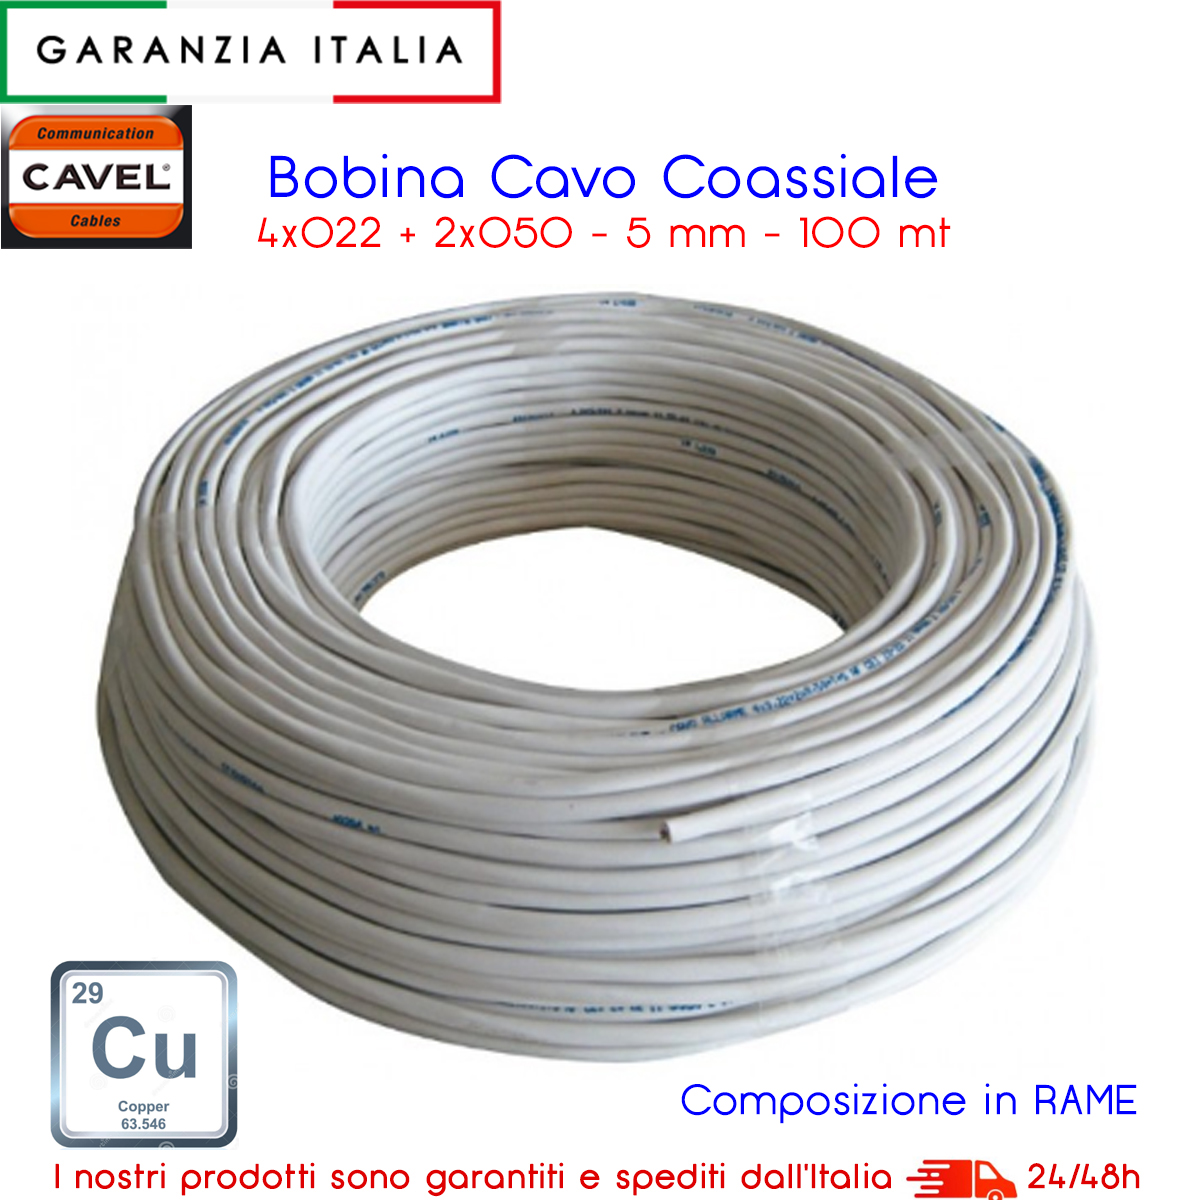 CAVO ALLARME 4X0,22 e 2X0,50 CAVEL - Made In Italy - CU Rame